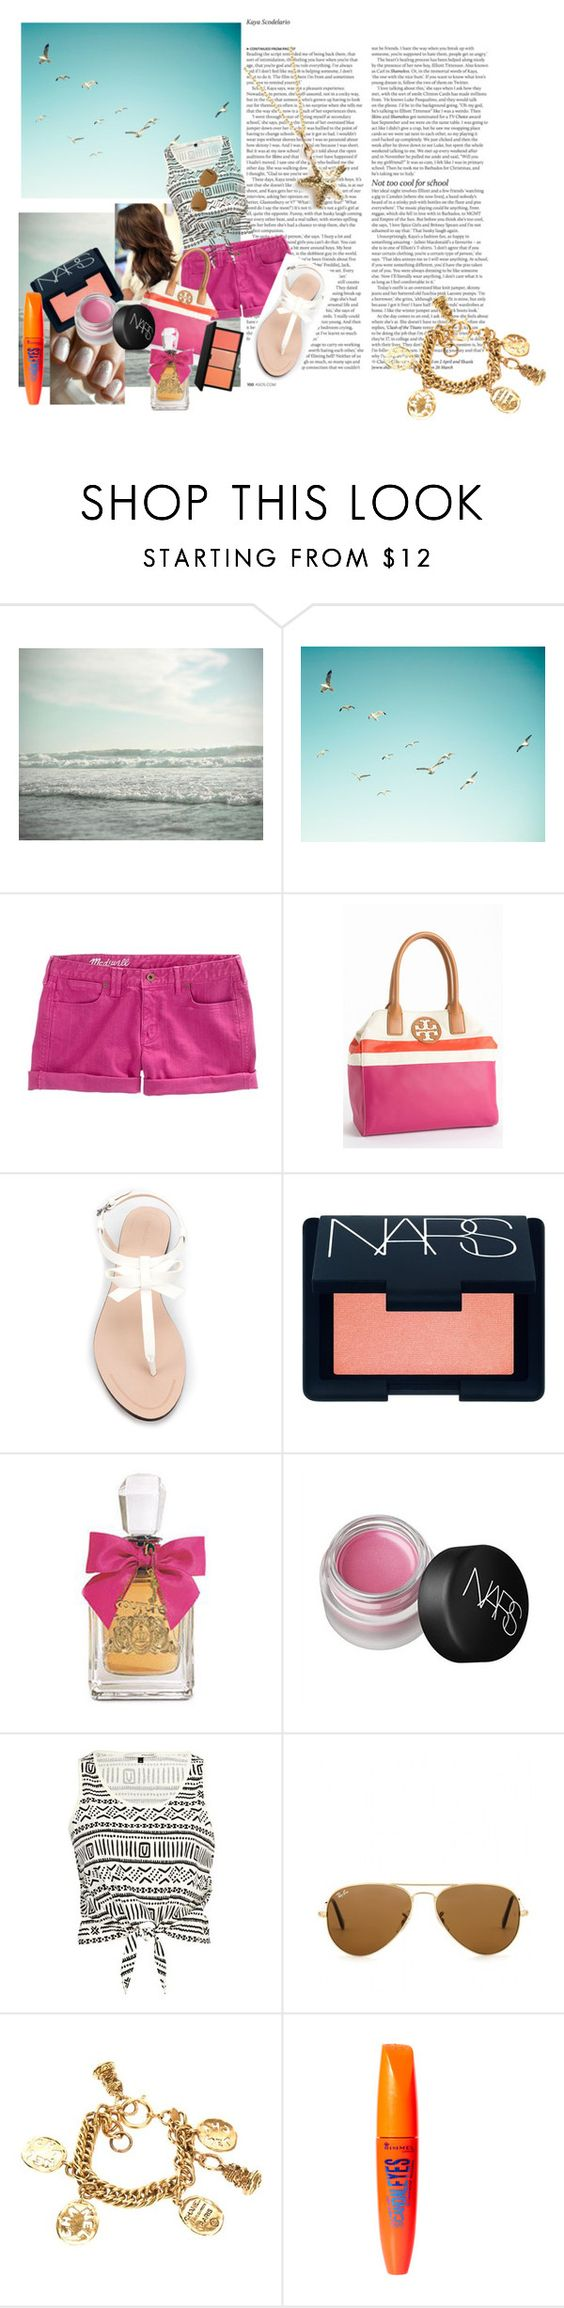 """Summer's Eve"" by cassie142 ❤ liked on Polyvore featuring ASOS, Madewell, Tory Burch, Essie, Zara, NARS Cosmetics, Juicy Couture, River Island, Ray-Ban and Chanel"